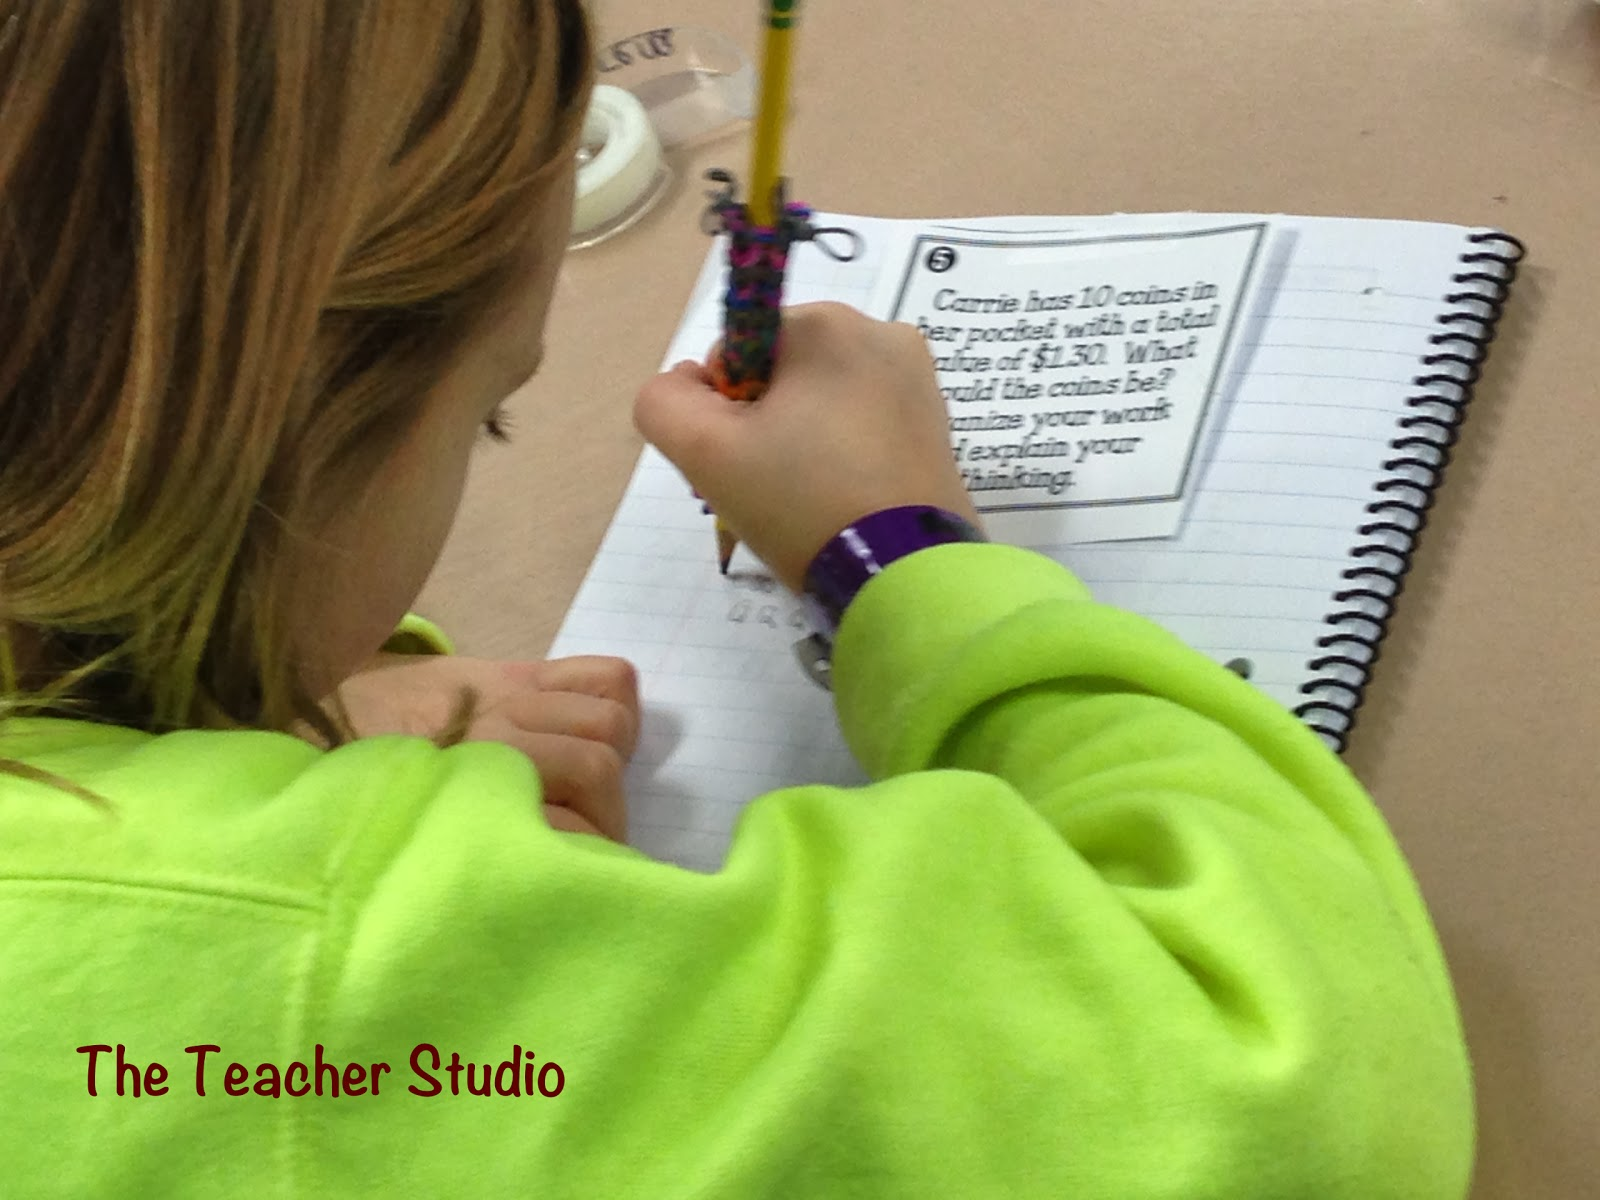 """By the time most students get to middle school, they've decided they """"aren't good at math."""" Our guest blogger shares her advice on teaching perseverance in math and not letting students tell themselves they aren't good at it!"""